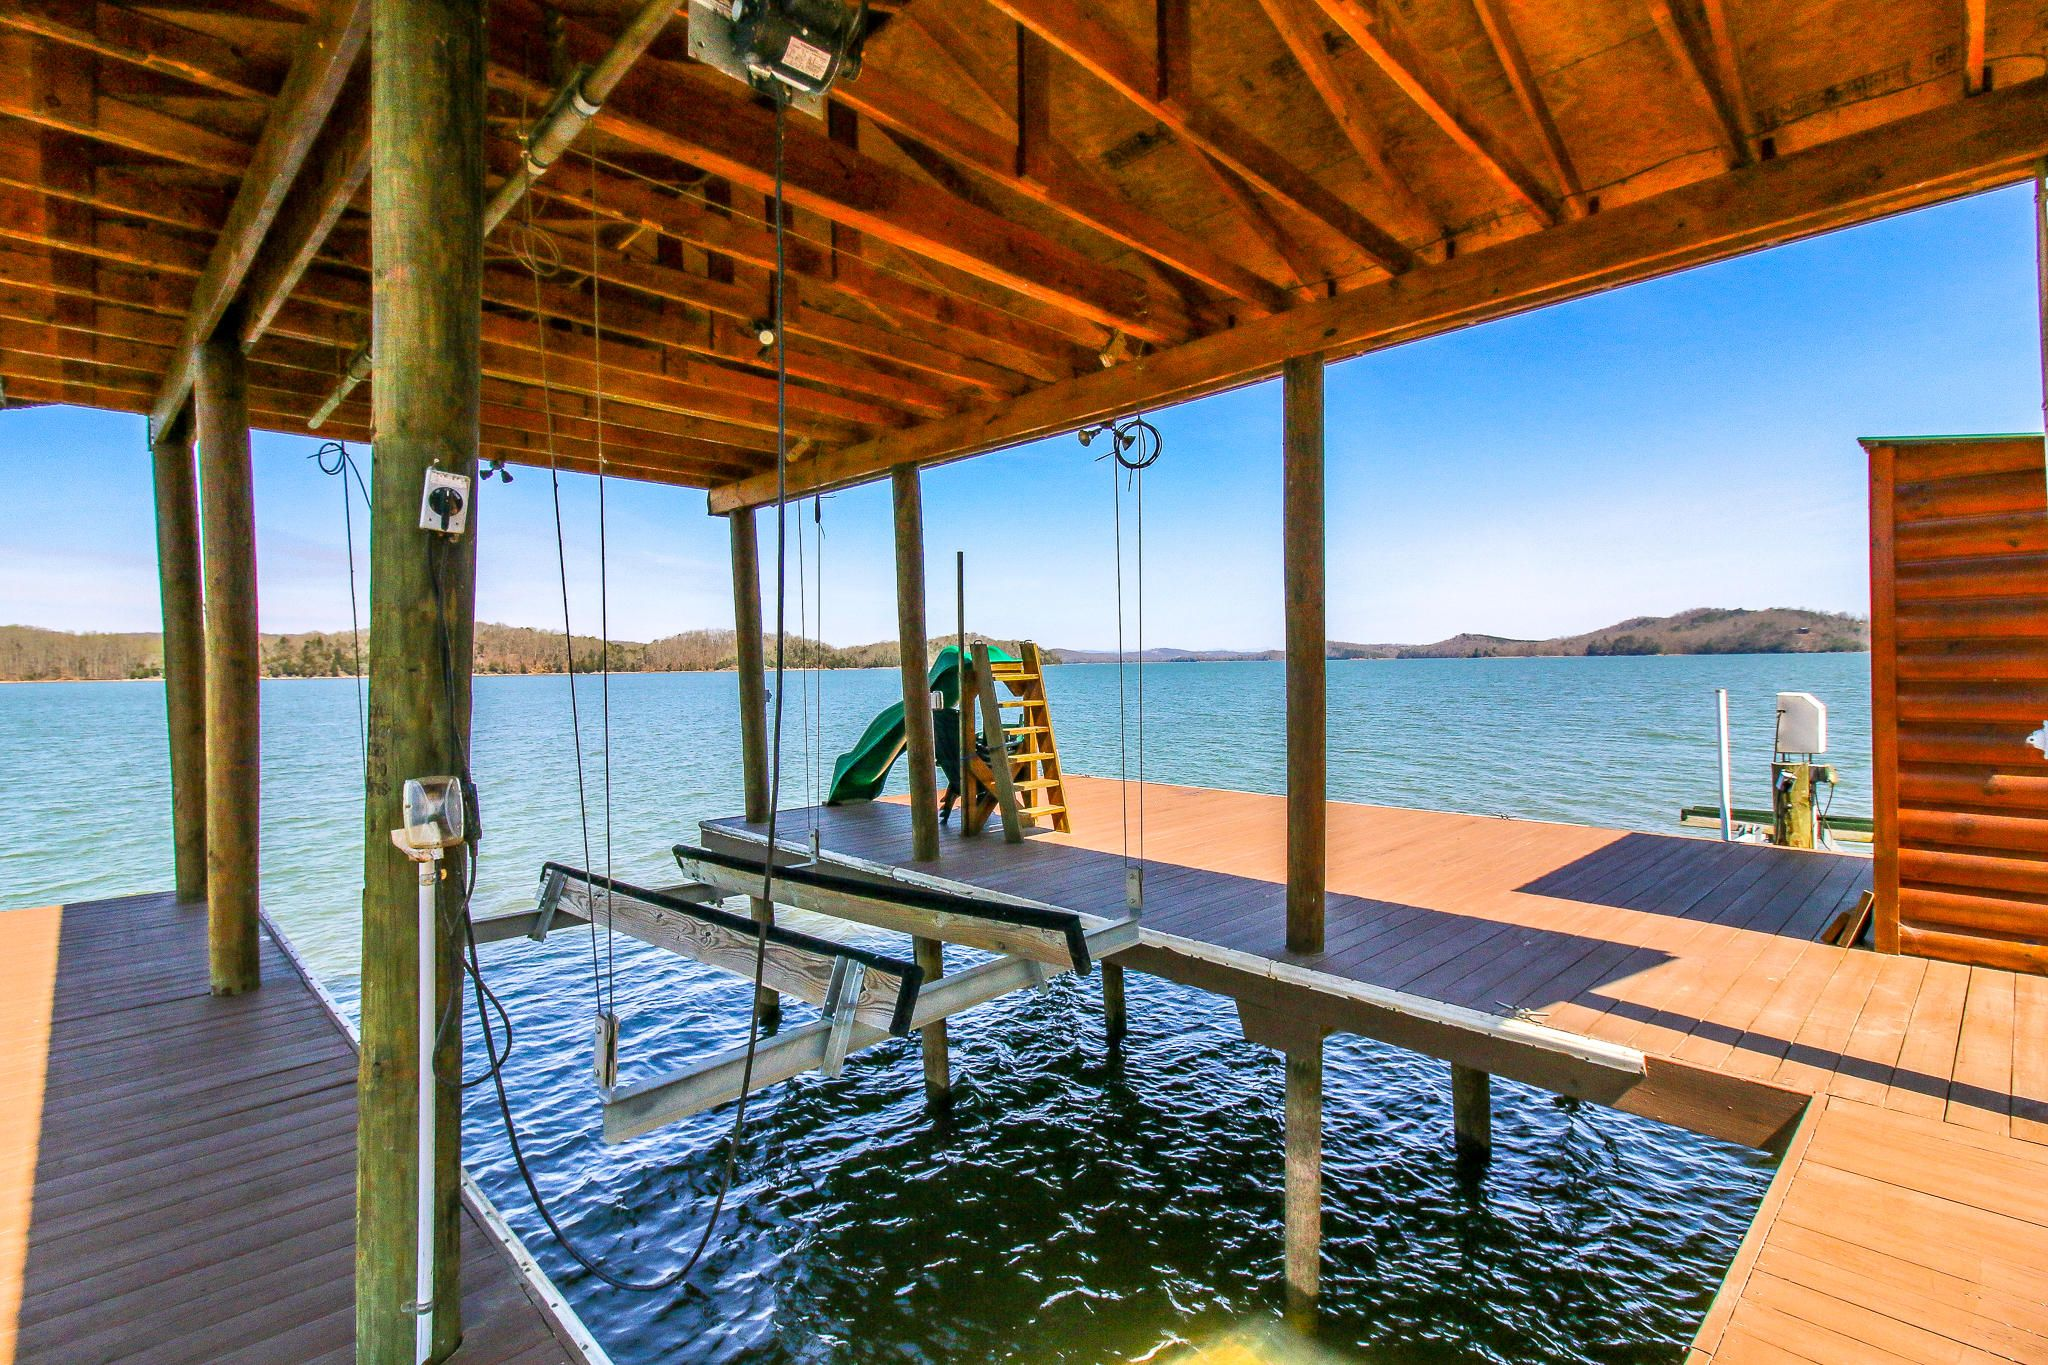 Boat dock w/lift